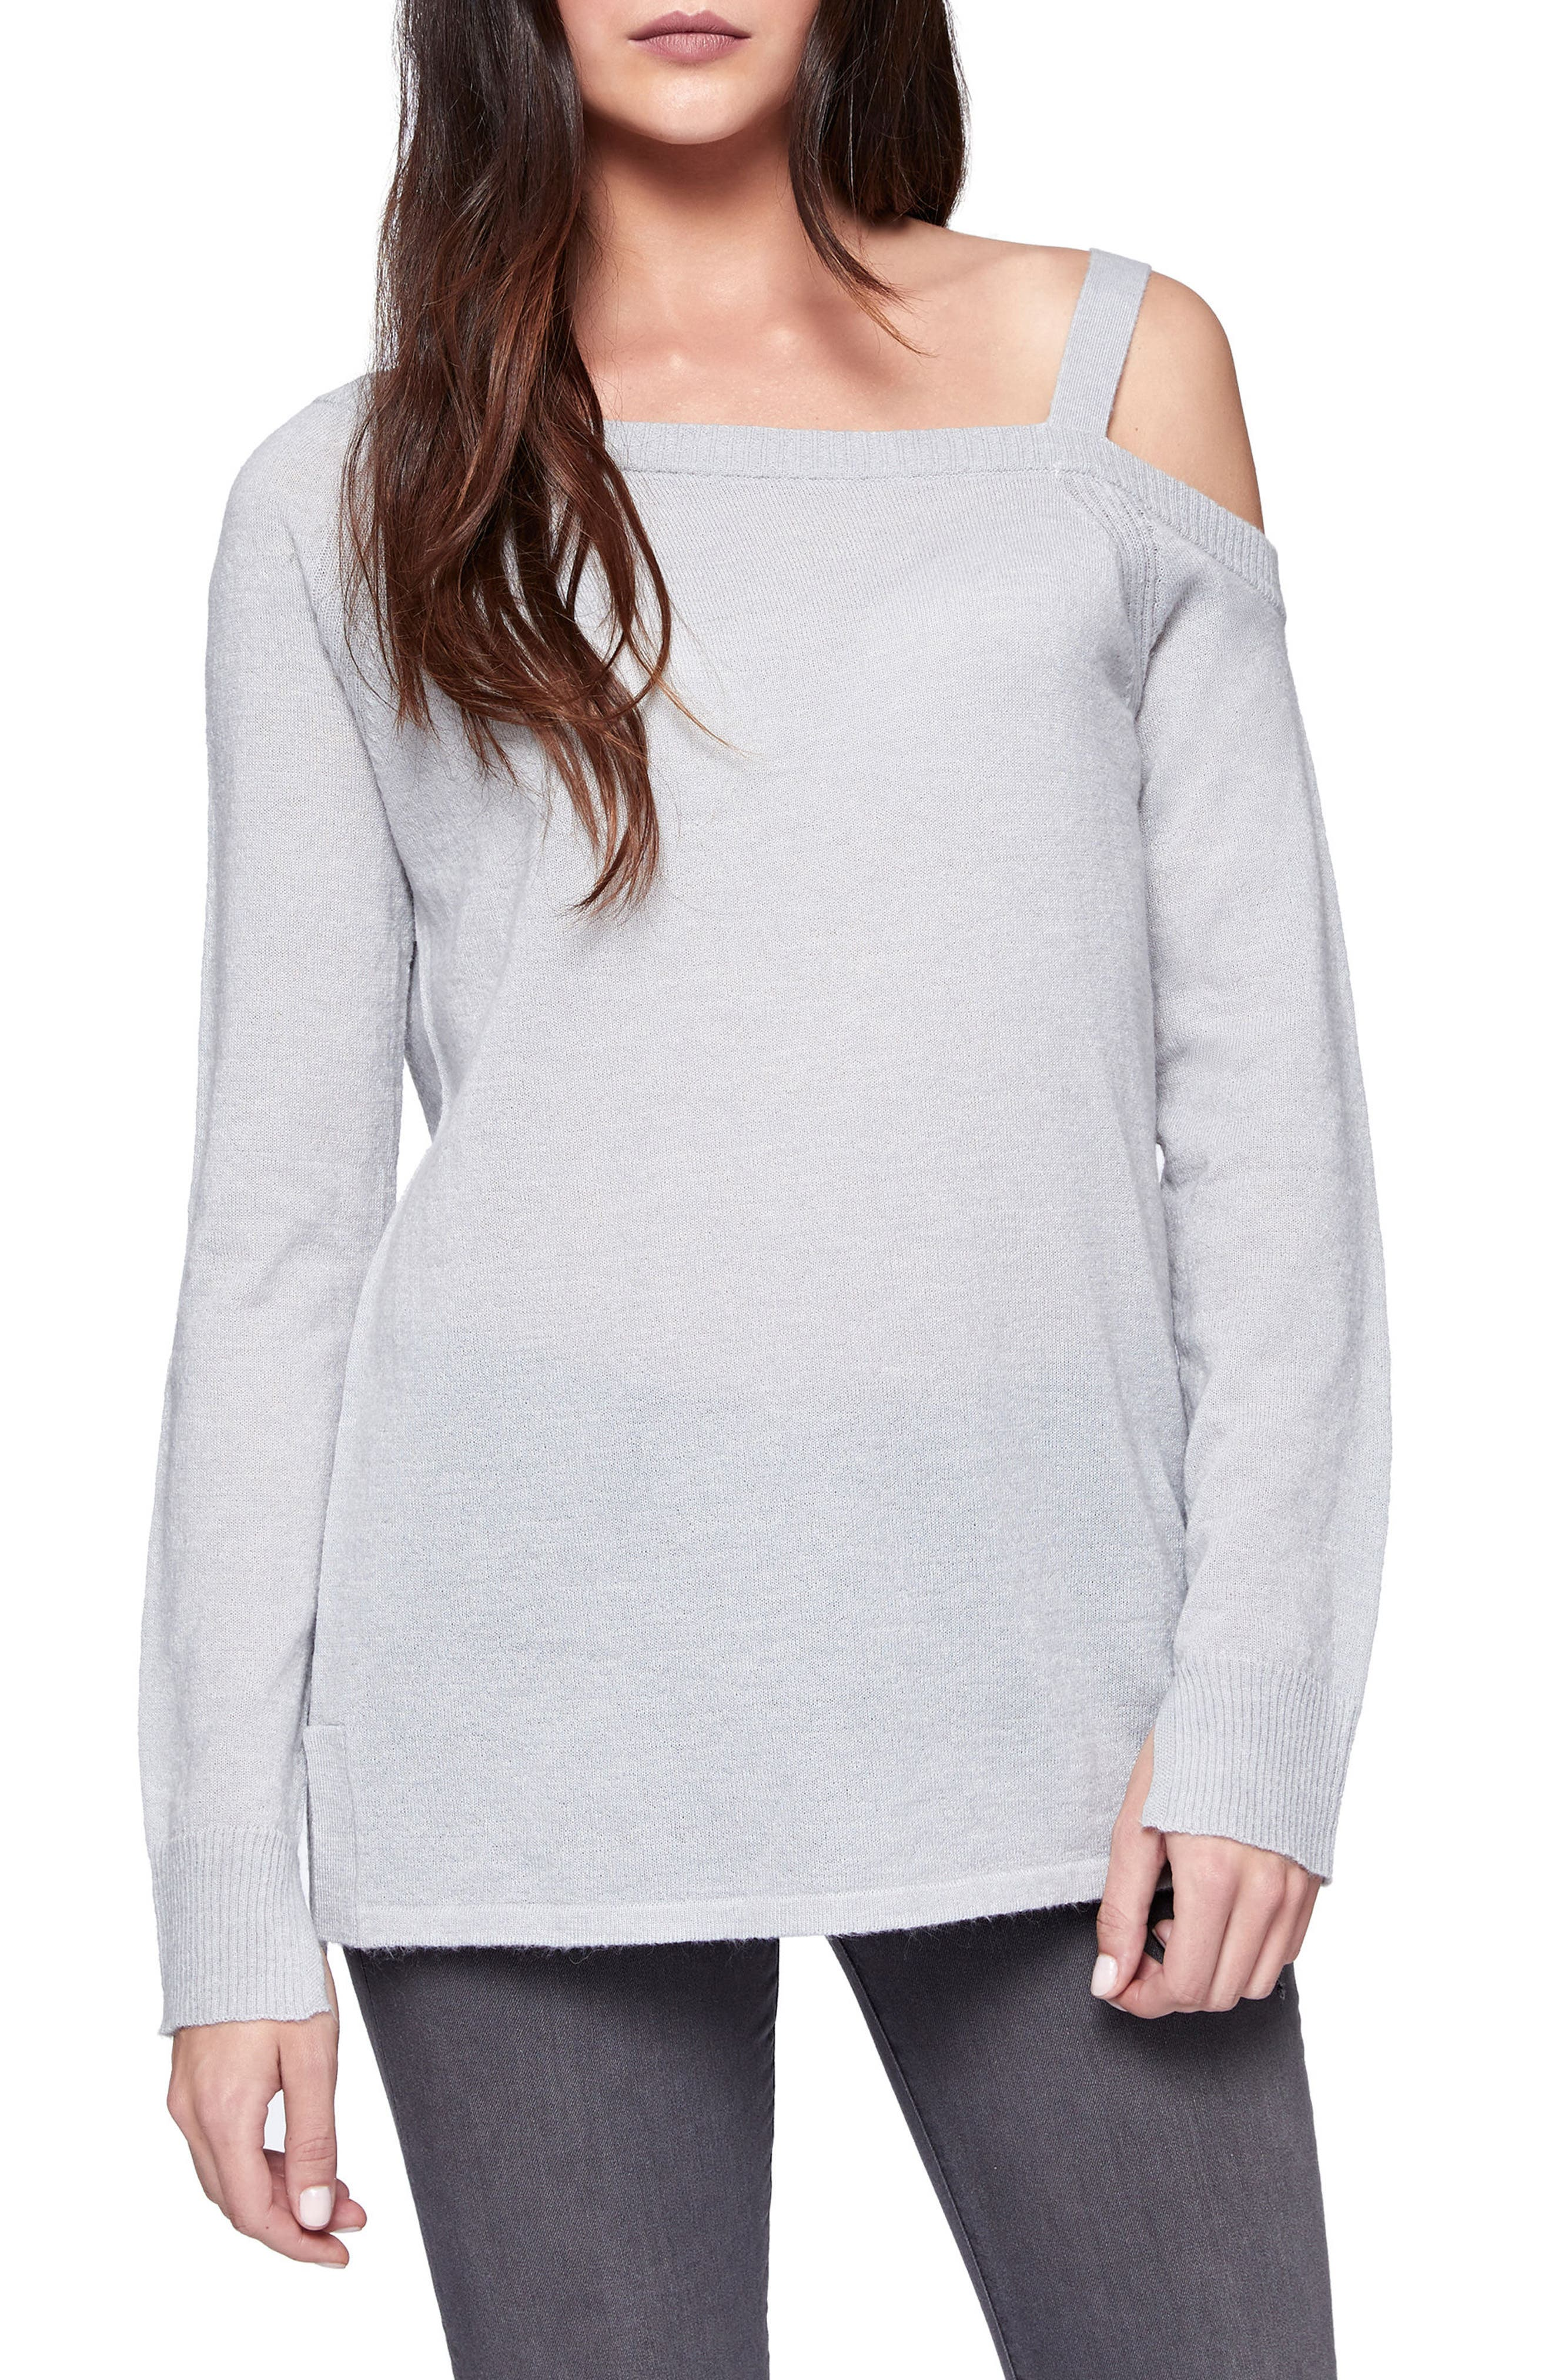 Camilla One-Shoulder Sweater,                         Main,                         color, Heather Grey